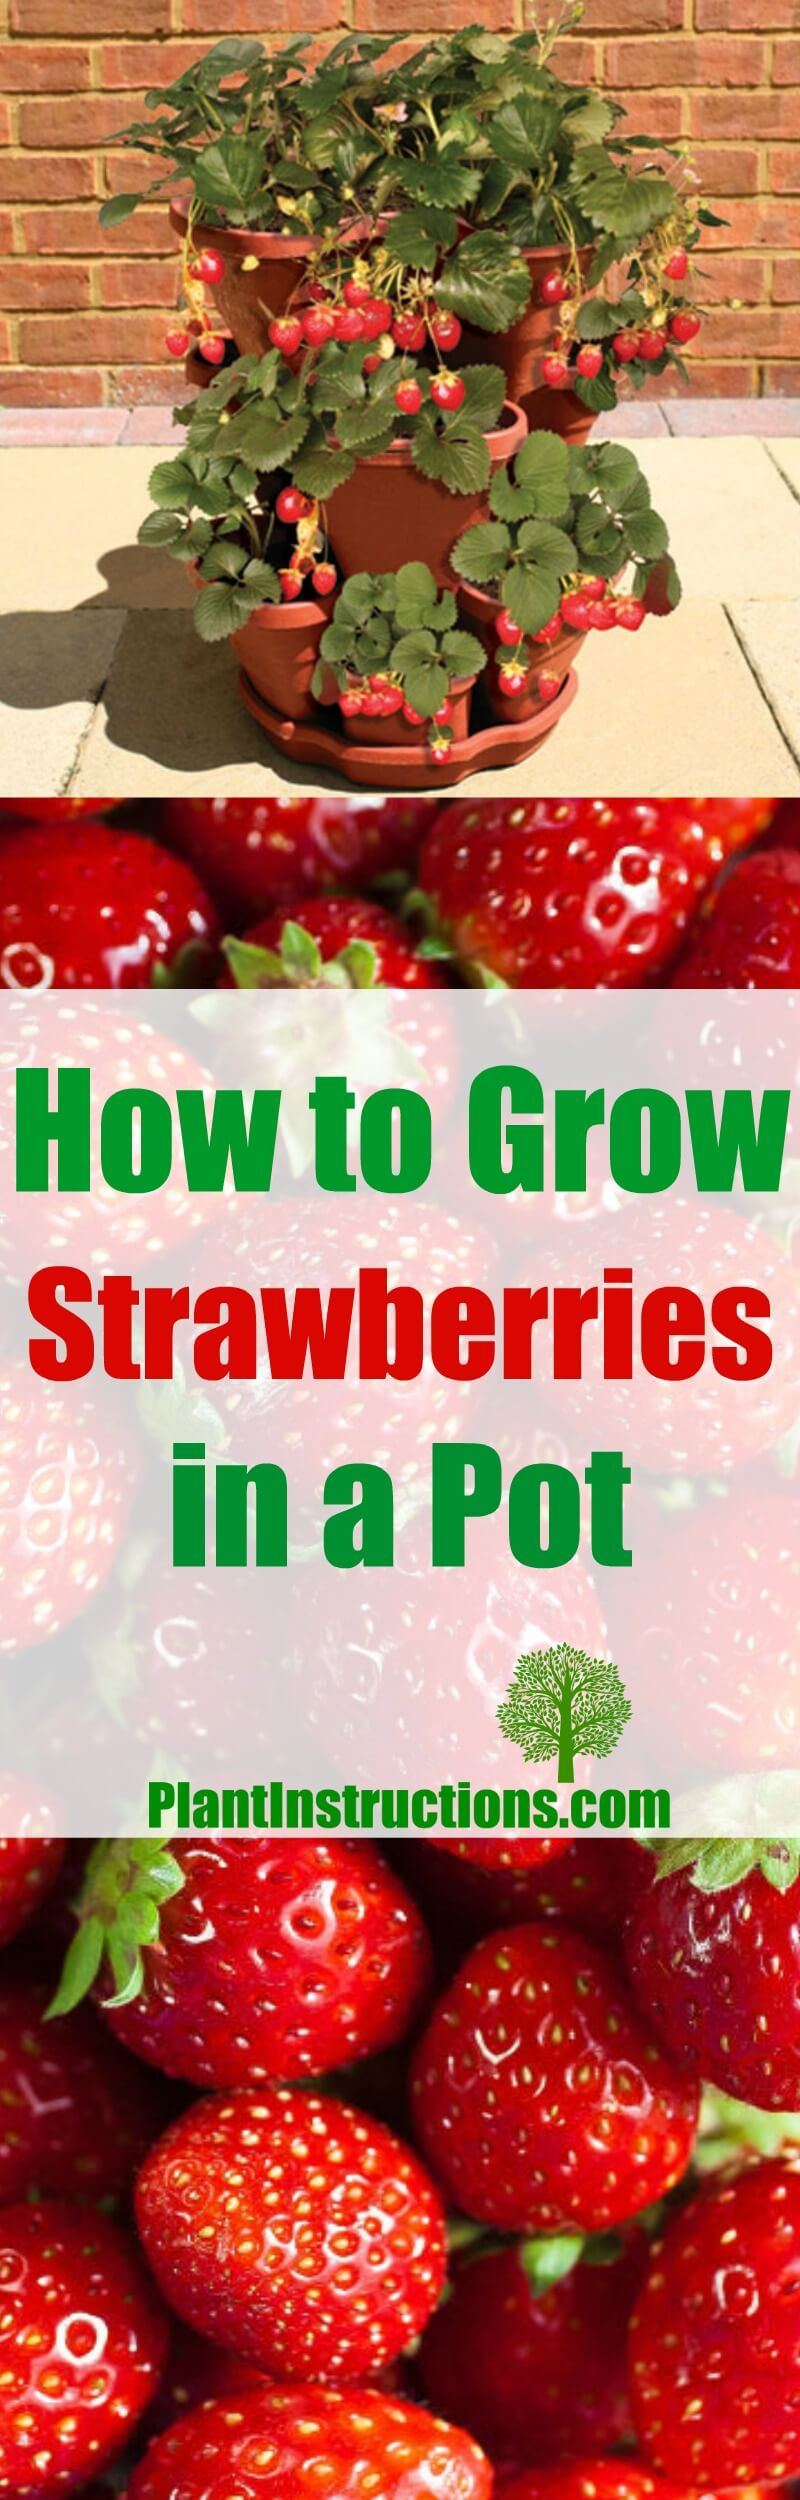 How To Grow Strawberries In A Pot Plant Instructions